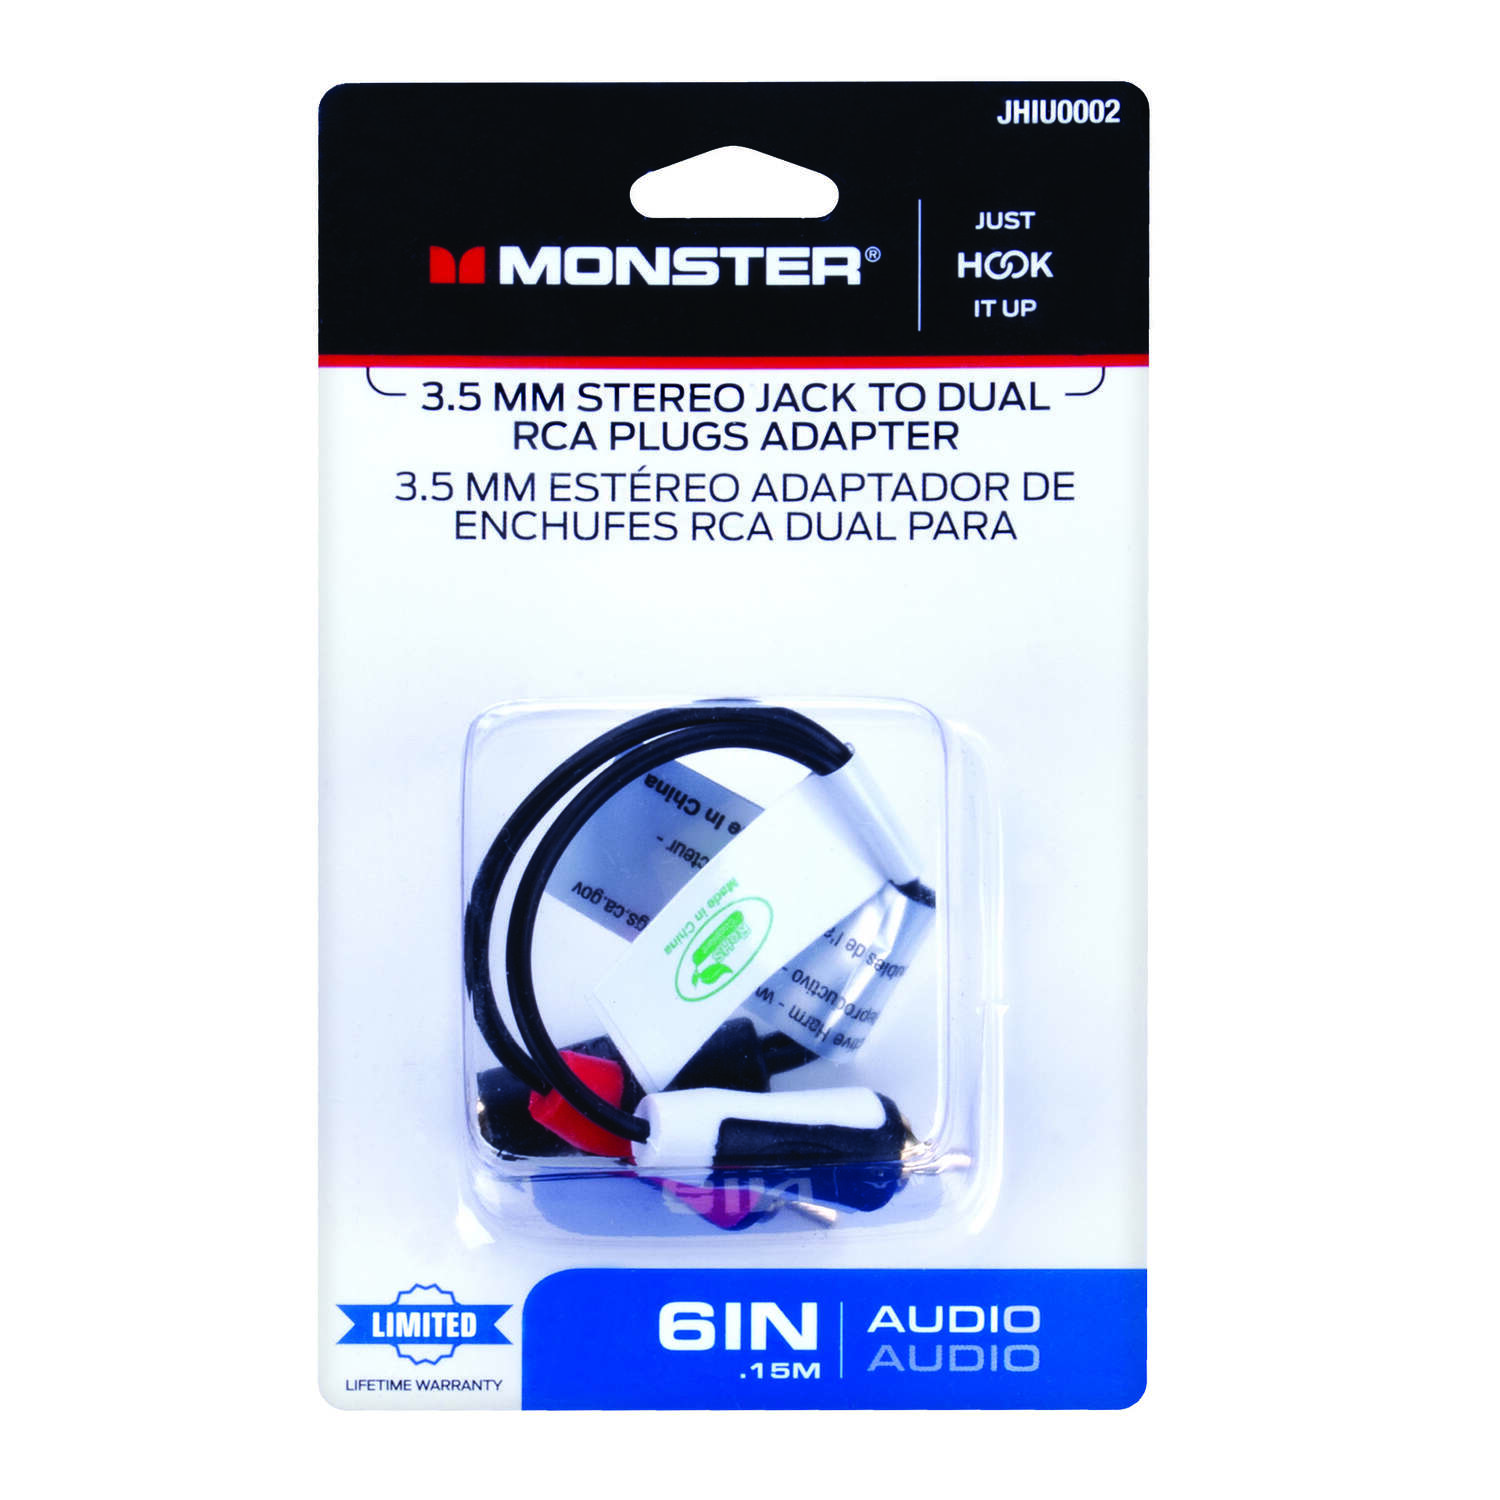 Monster Cable  Just Hook It Up  Audio Visual Adapter  1 pk